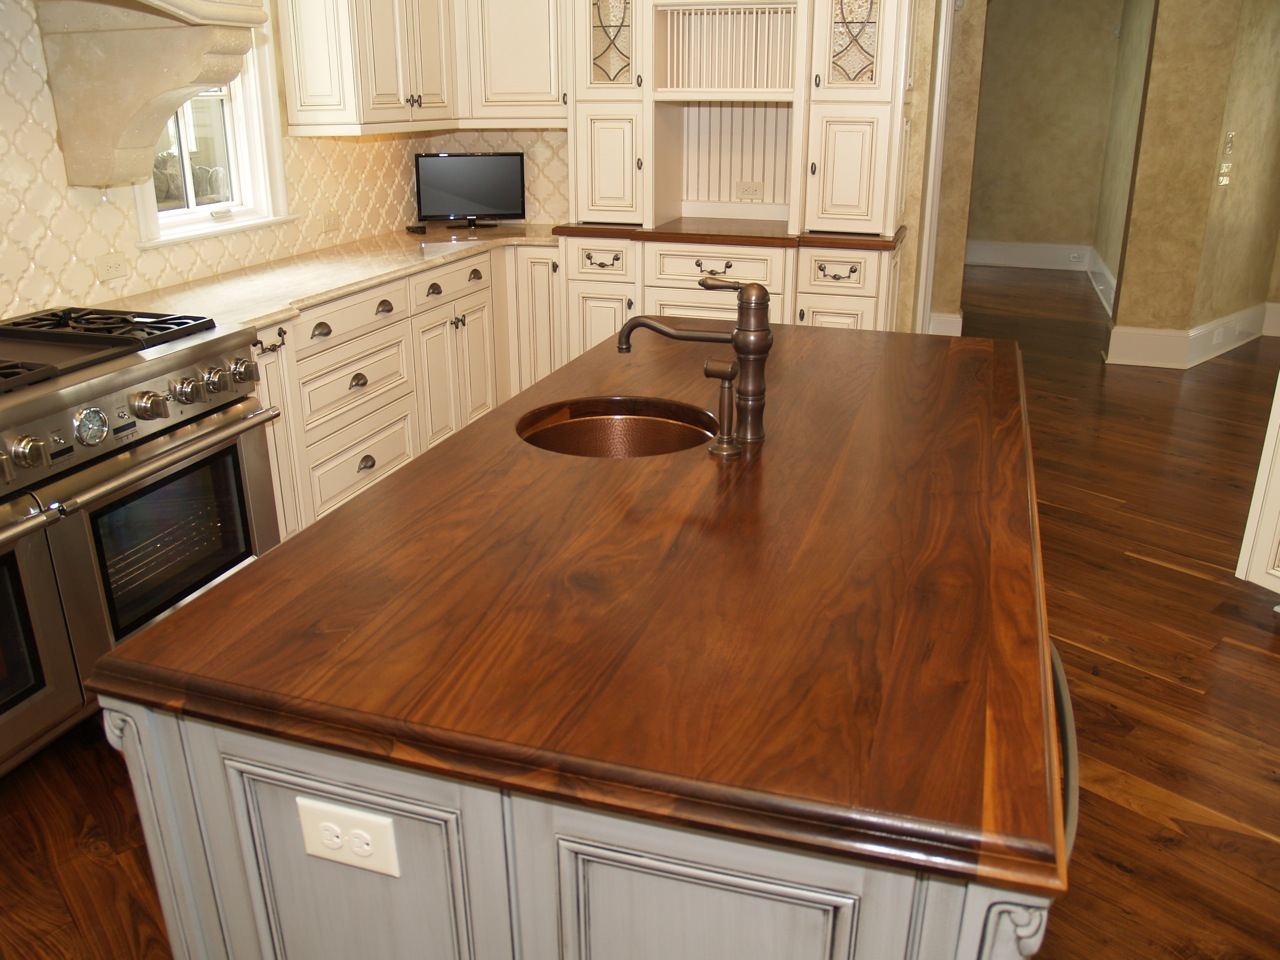 Walnut Kitchen Countertop, Wide Plank Flat Grain Construction, 1.75u201d Thick,  Large Double Roman Ogee Edge, Undermount Sink, With Permanent Finish.